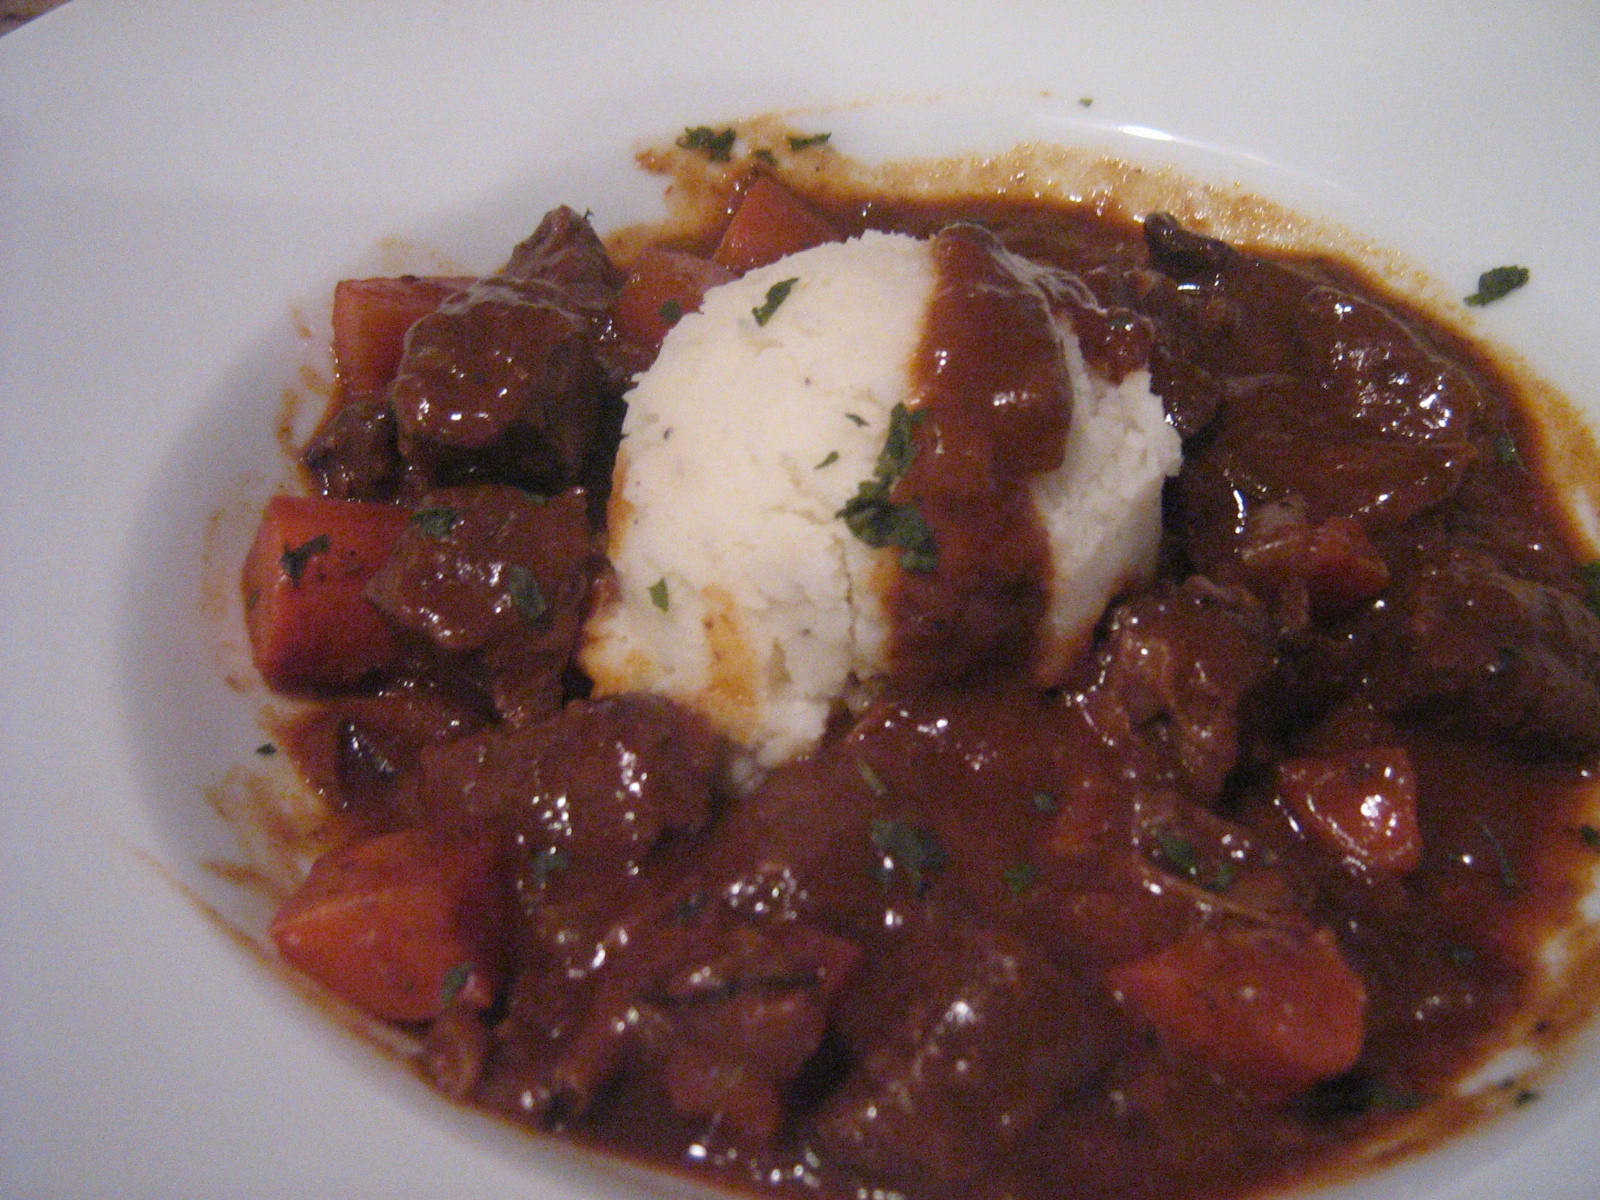 Beef Stew Calories  How Many Calories In 1 Cup Beef Stew Meat